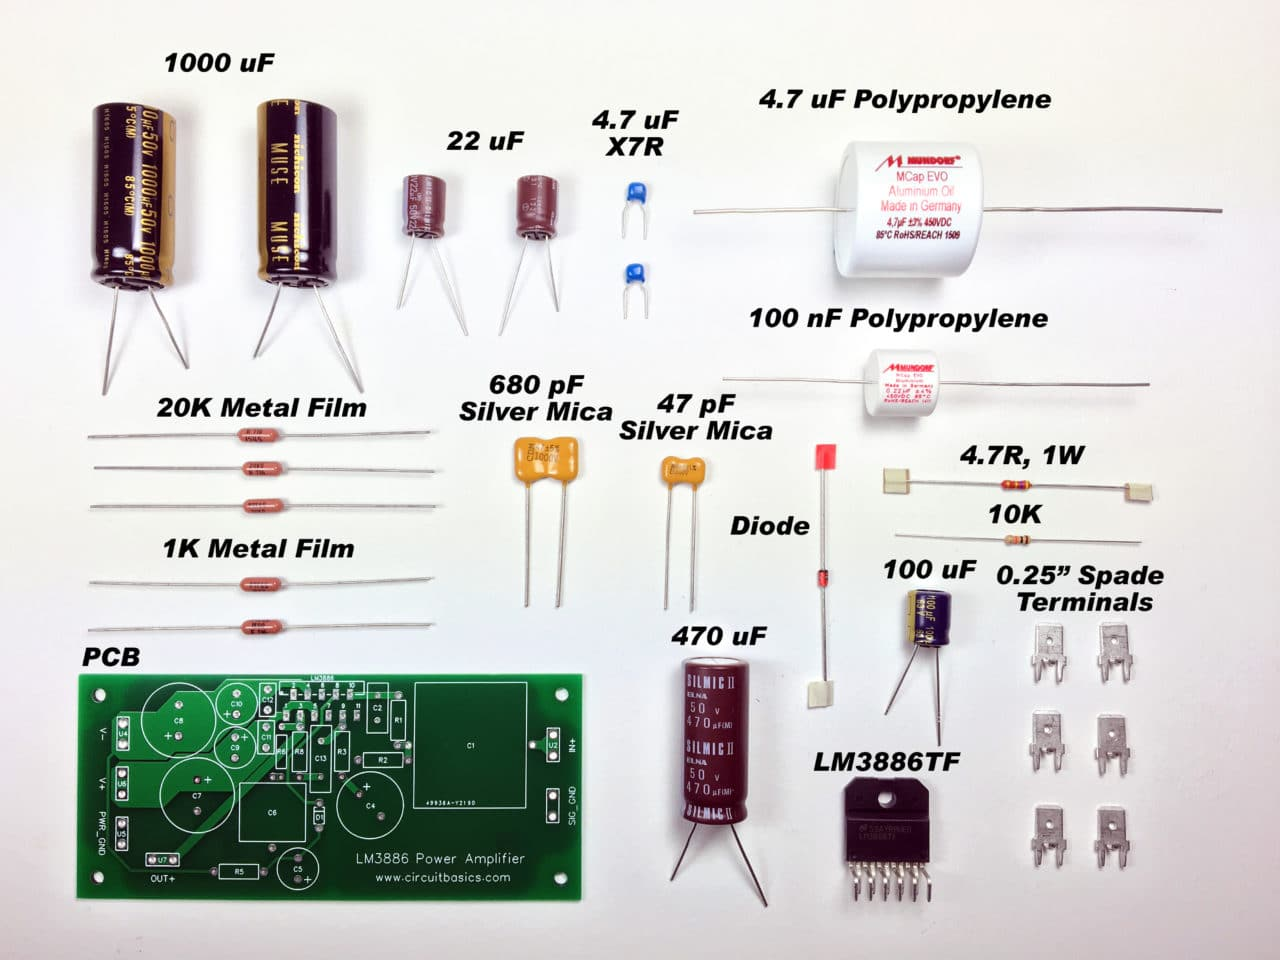 A Complete Guide To Design And Build Hi Fi Lm3886 Amplifier Voltage Divider Rule Circuit The Total Cost Came About 118 For Both Channels Not Including Chassis Power Supply Wiring Parts You Can It Lot Less With Cheaper